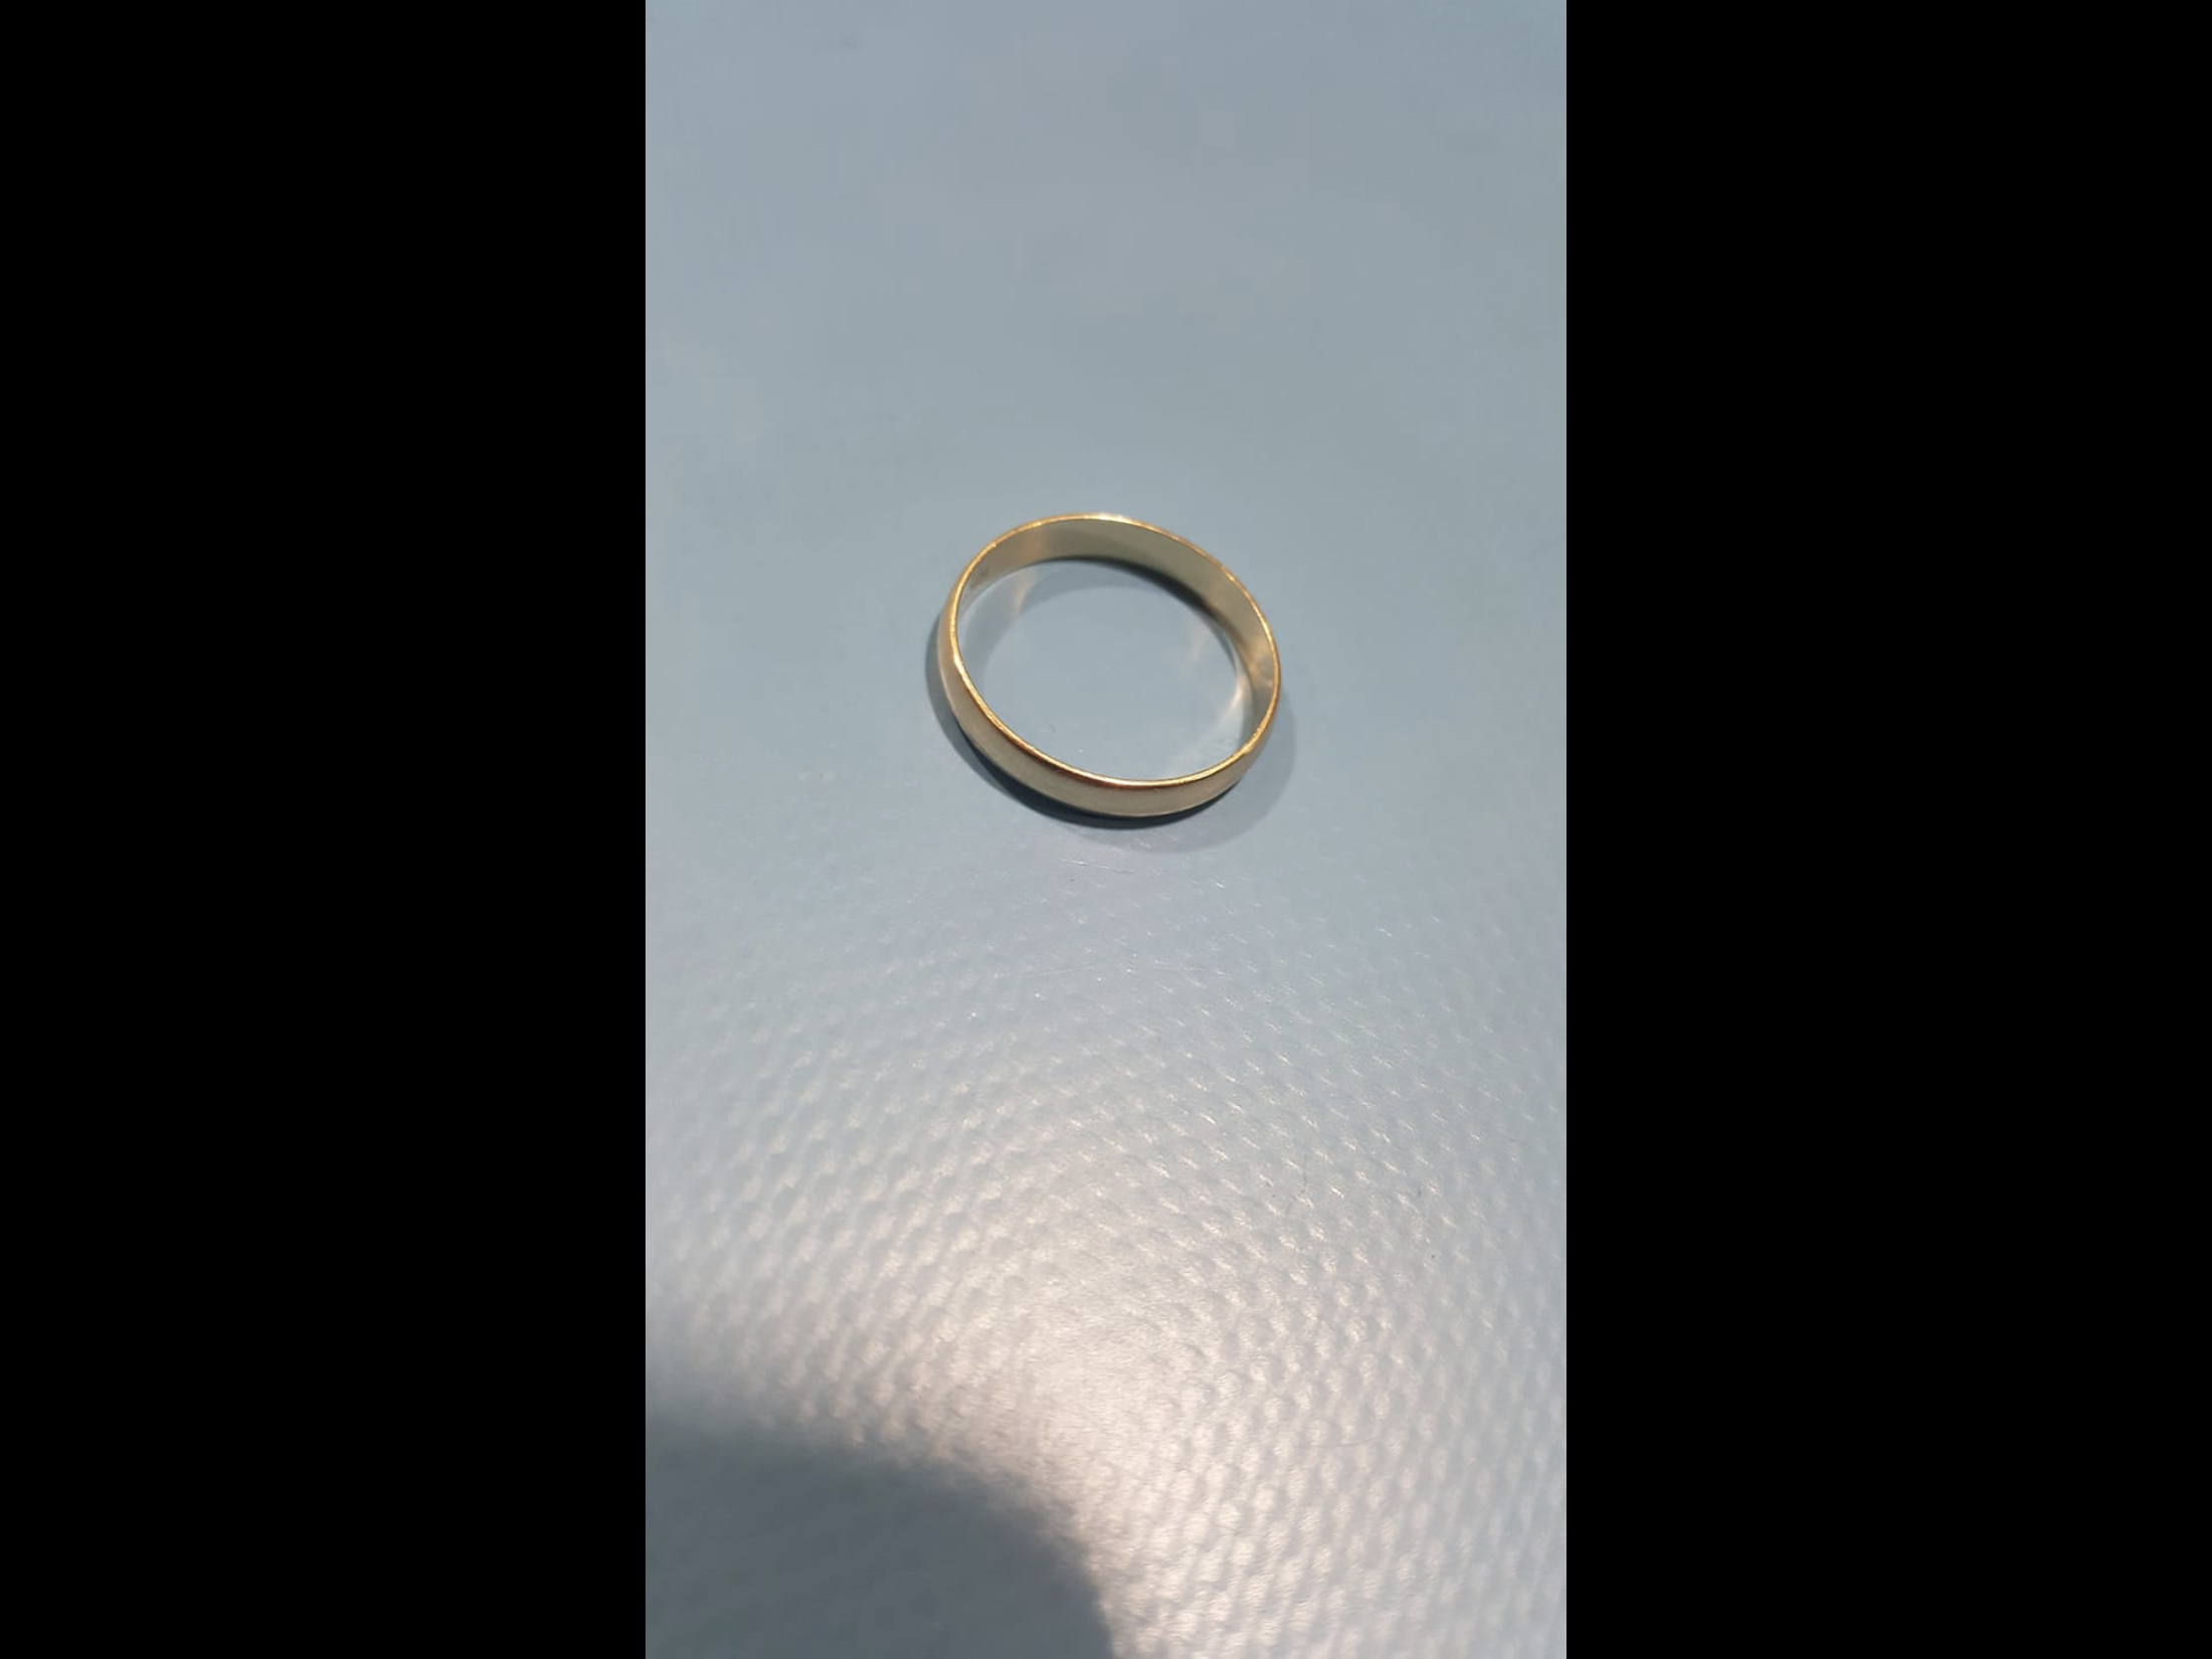 Woman Finds Wedding Ring At Tops In Alden Lets Share And